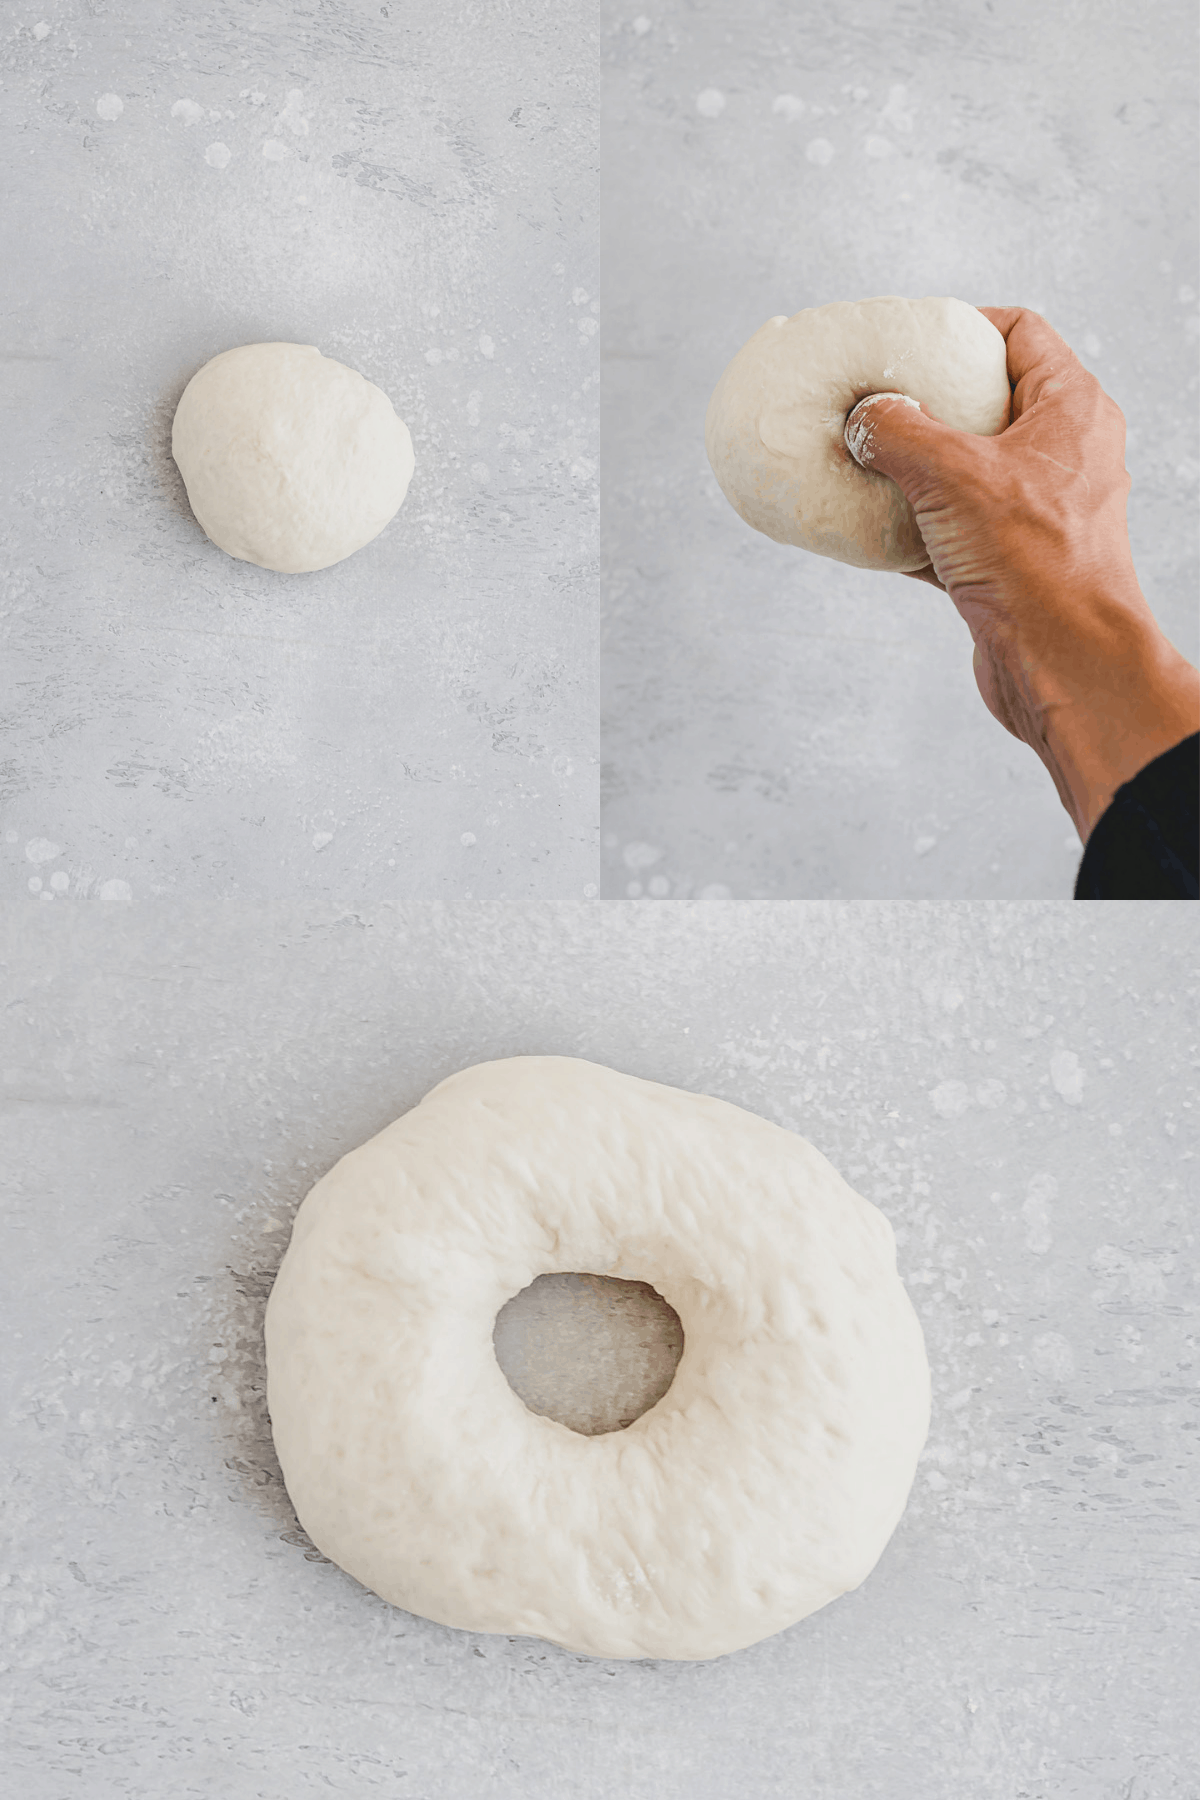 Shaping a bagel